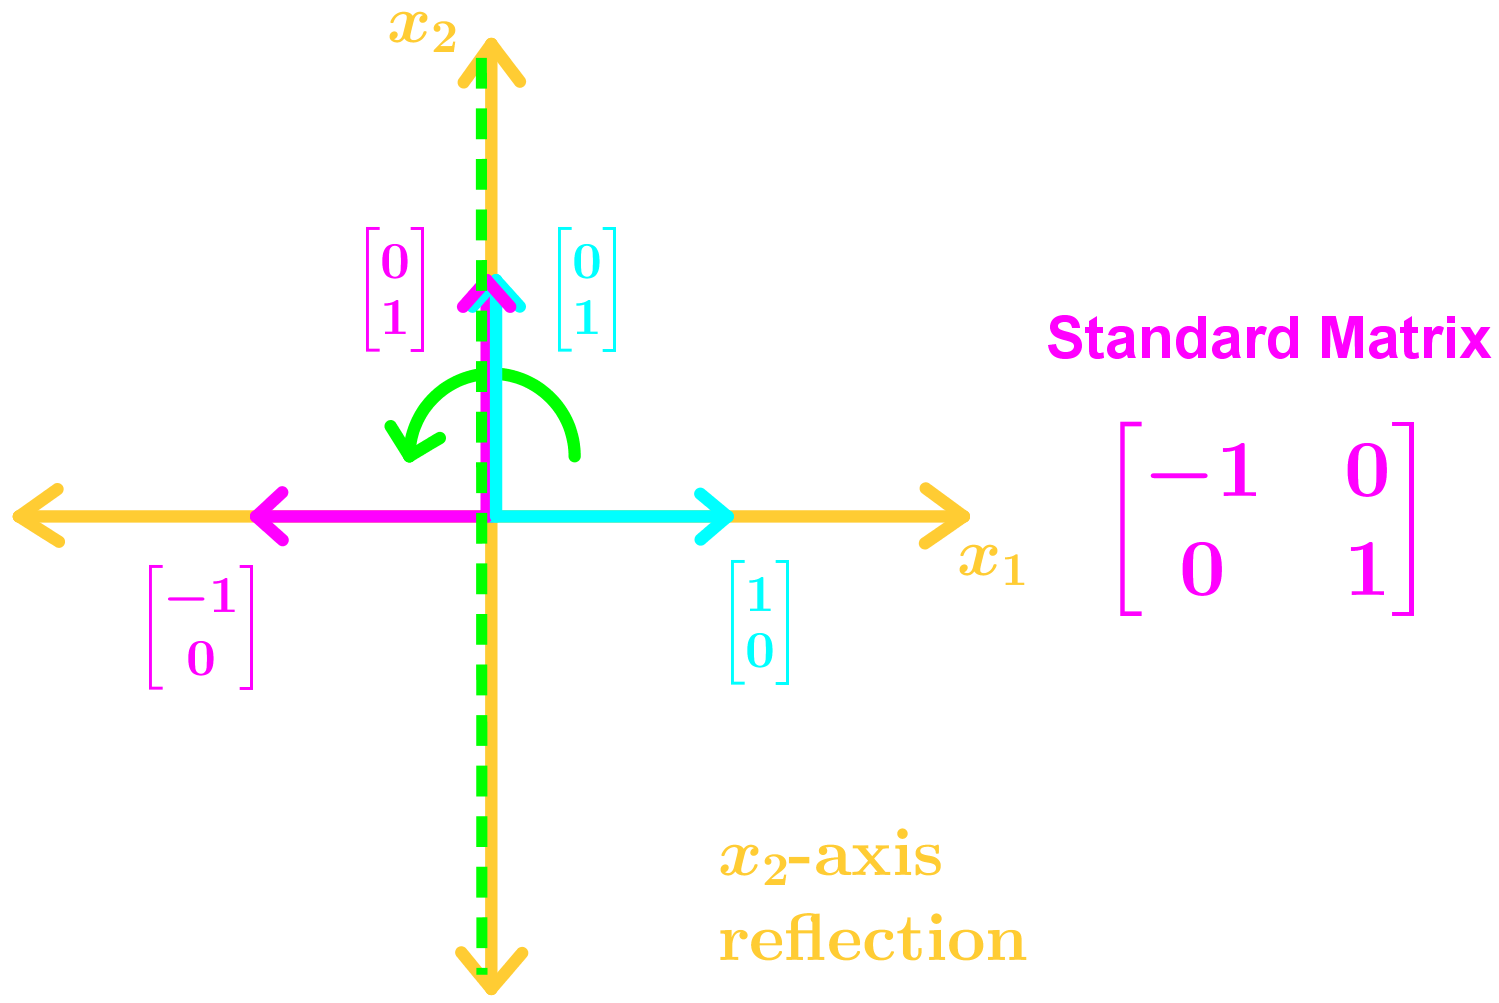 x2-axis reflection